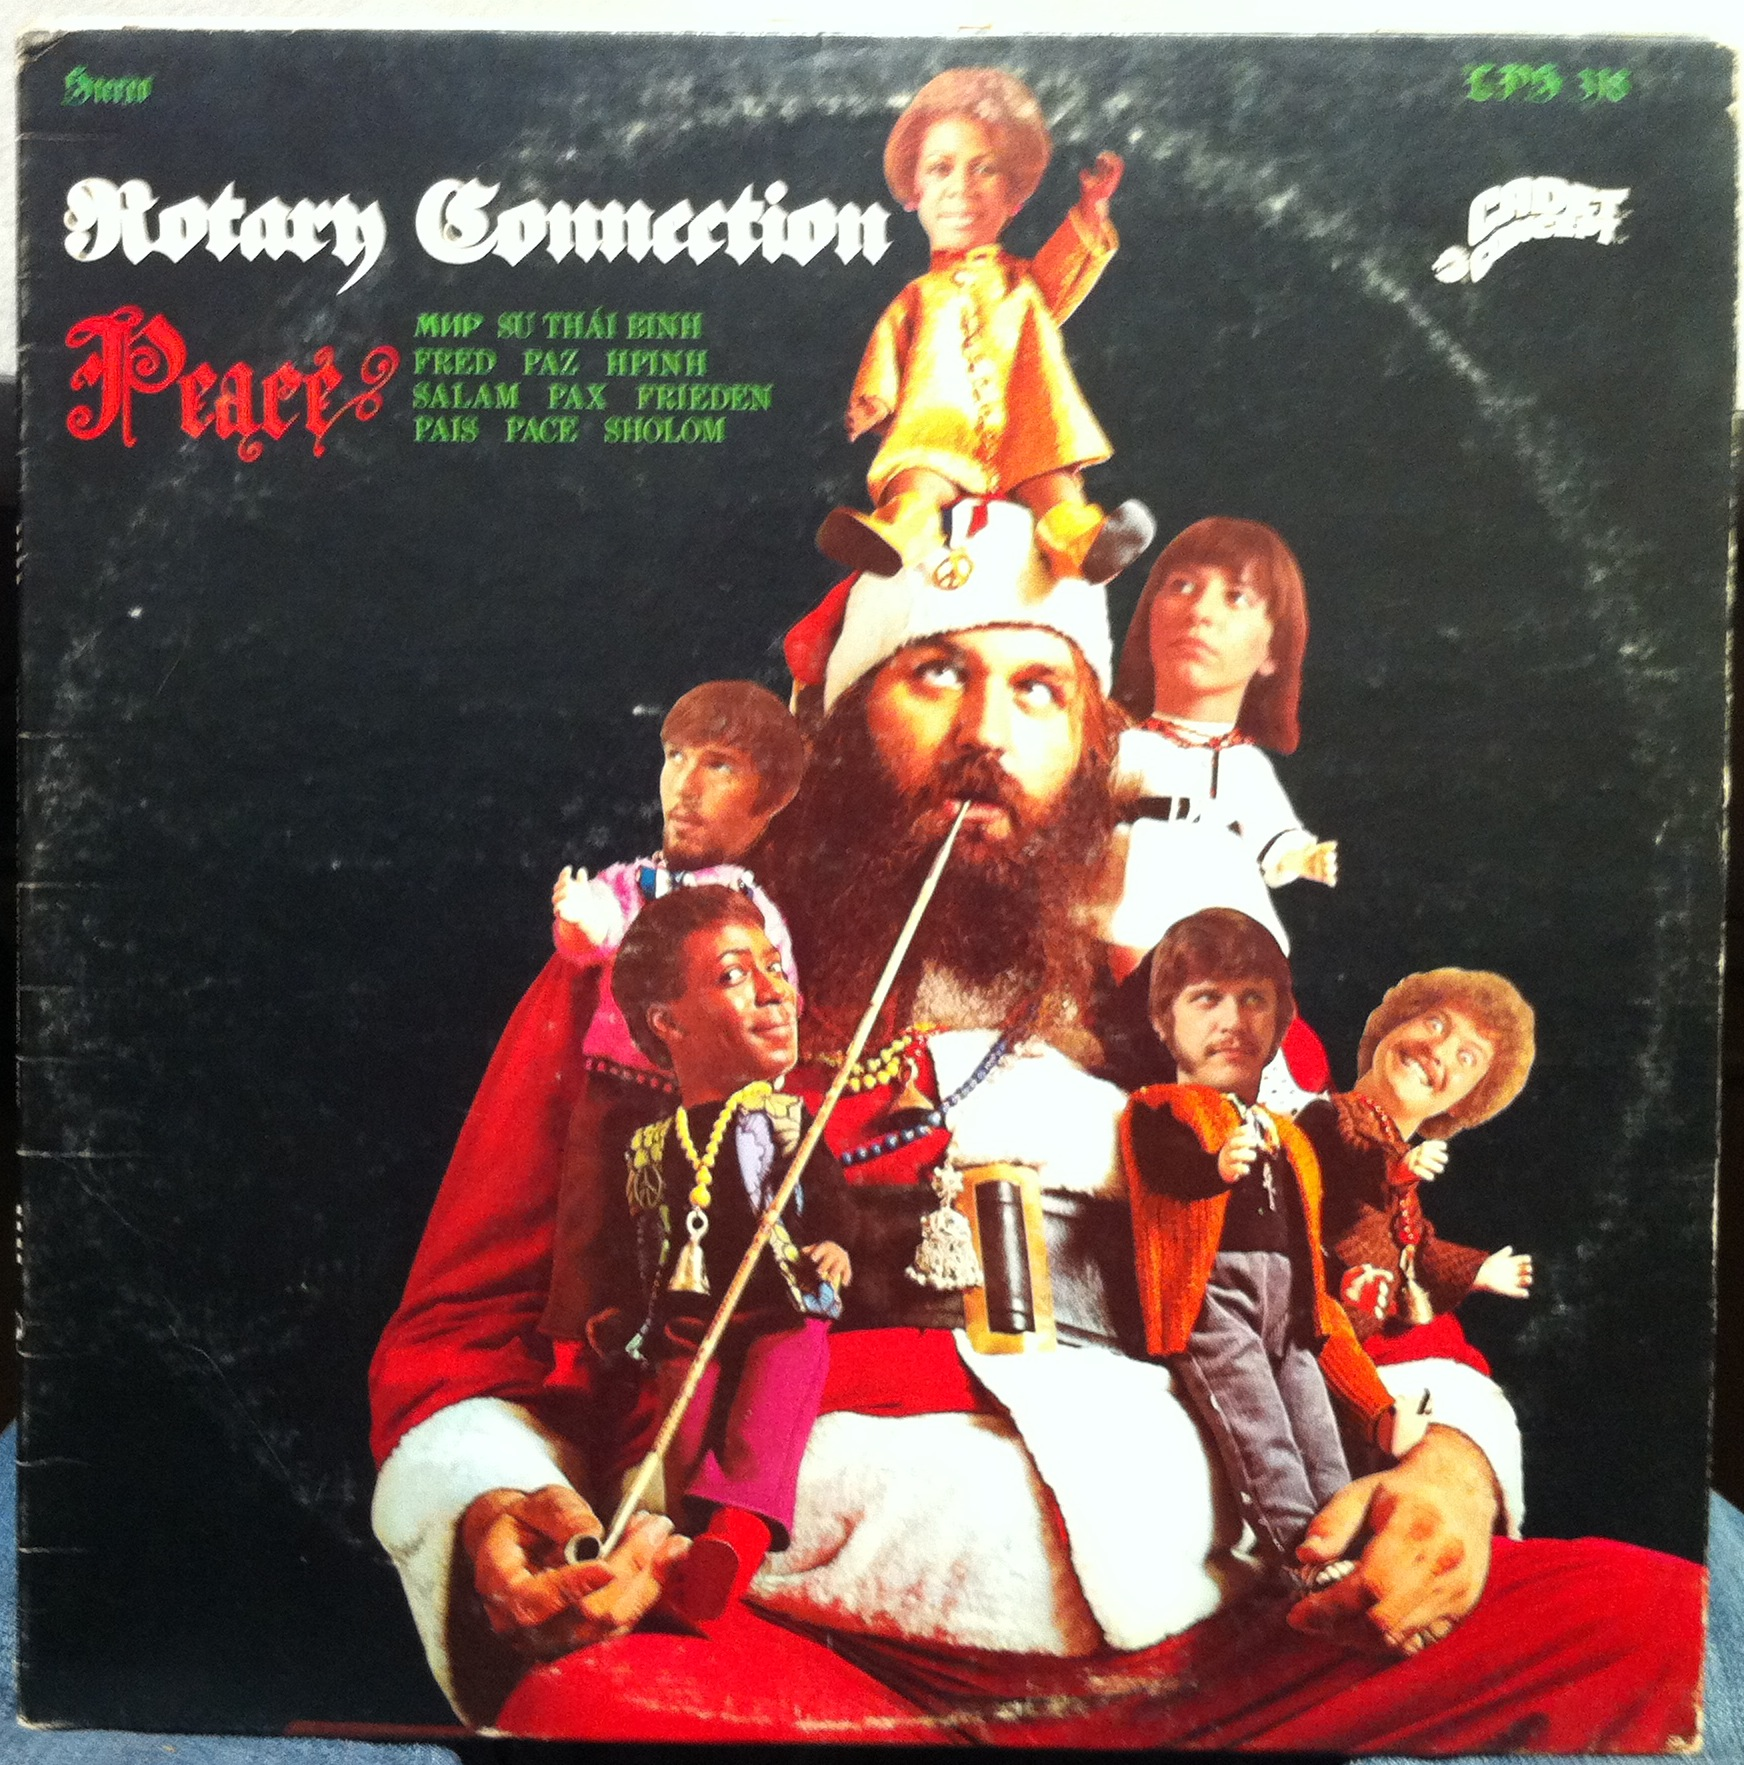 rotary-connection-peace-cover.jpg